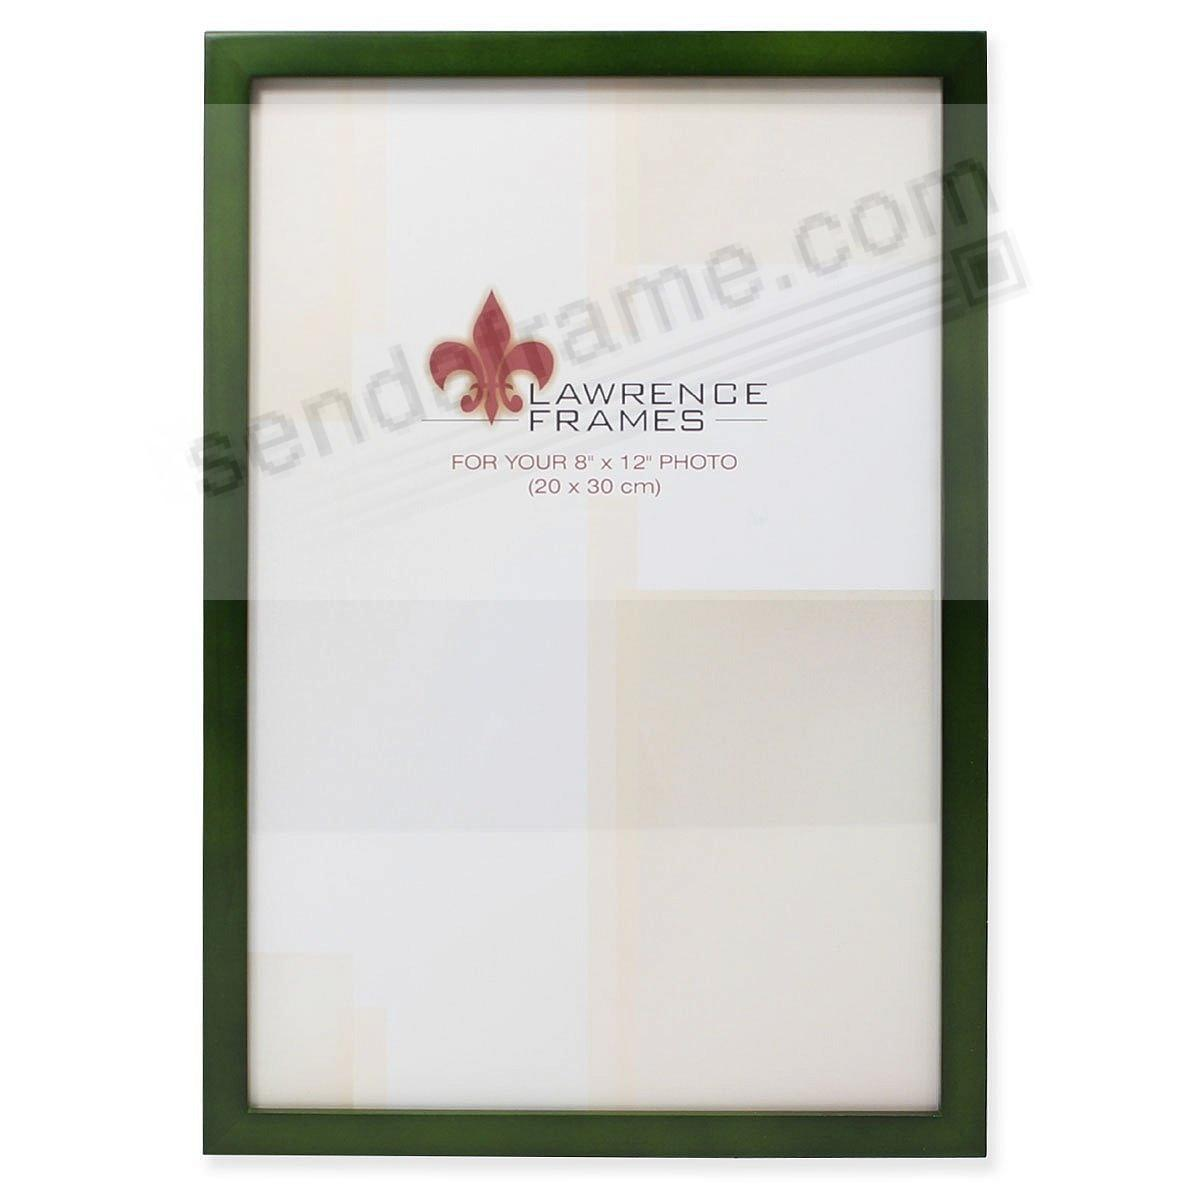 SQUARE CORNER Green Stain classic 8x12 frame by Lawrence Frames®